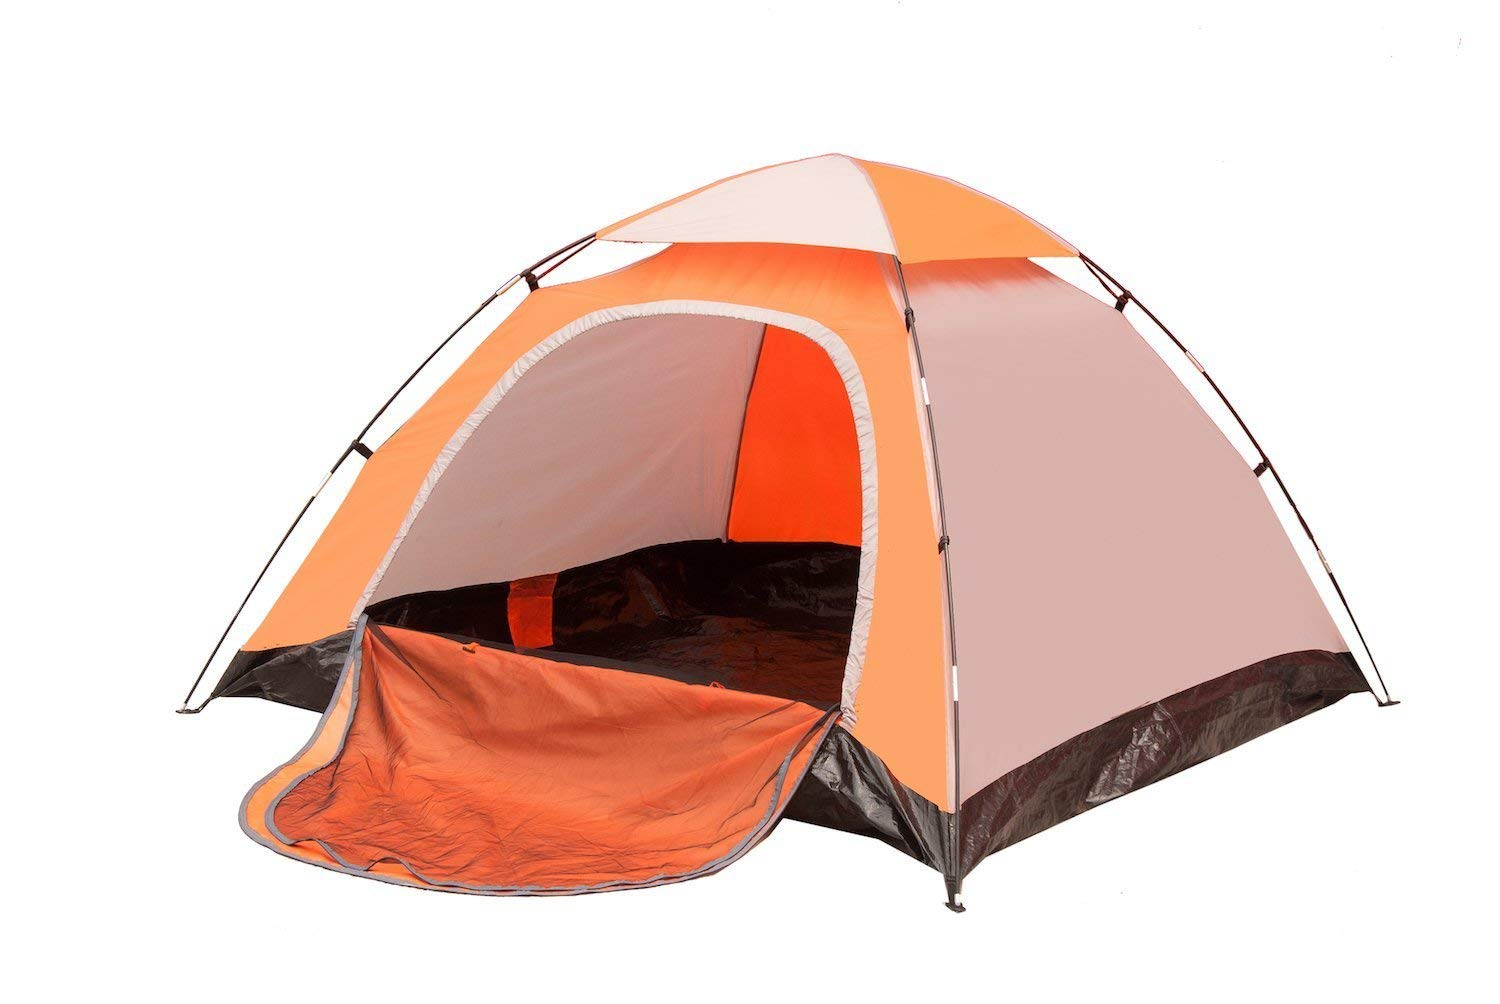 iCorer-Backpacking-Tent-Waterproof-Lightweight-2-3-Person-Family-Camping-Portable-Lightweight-Easy-Setup-Hiking-Tent